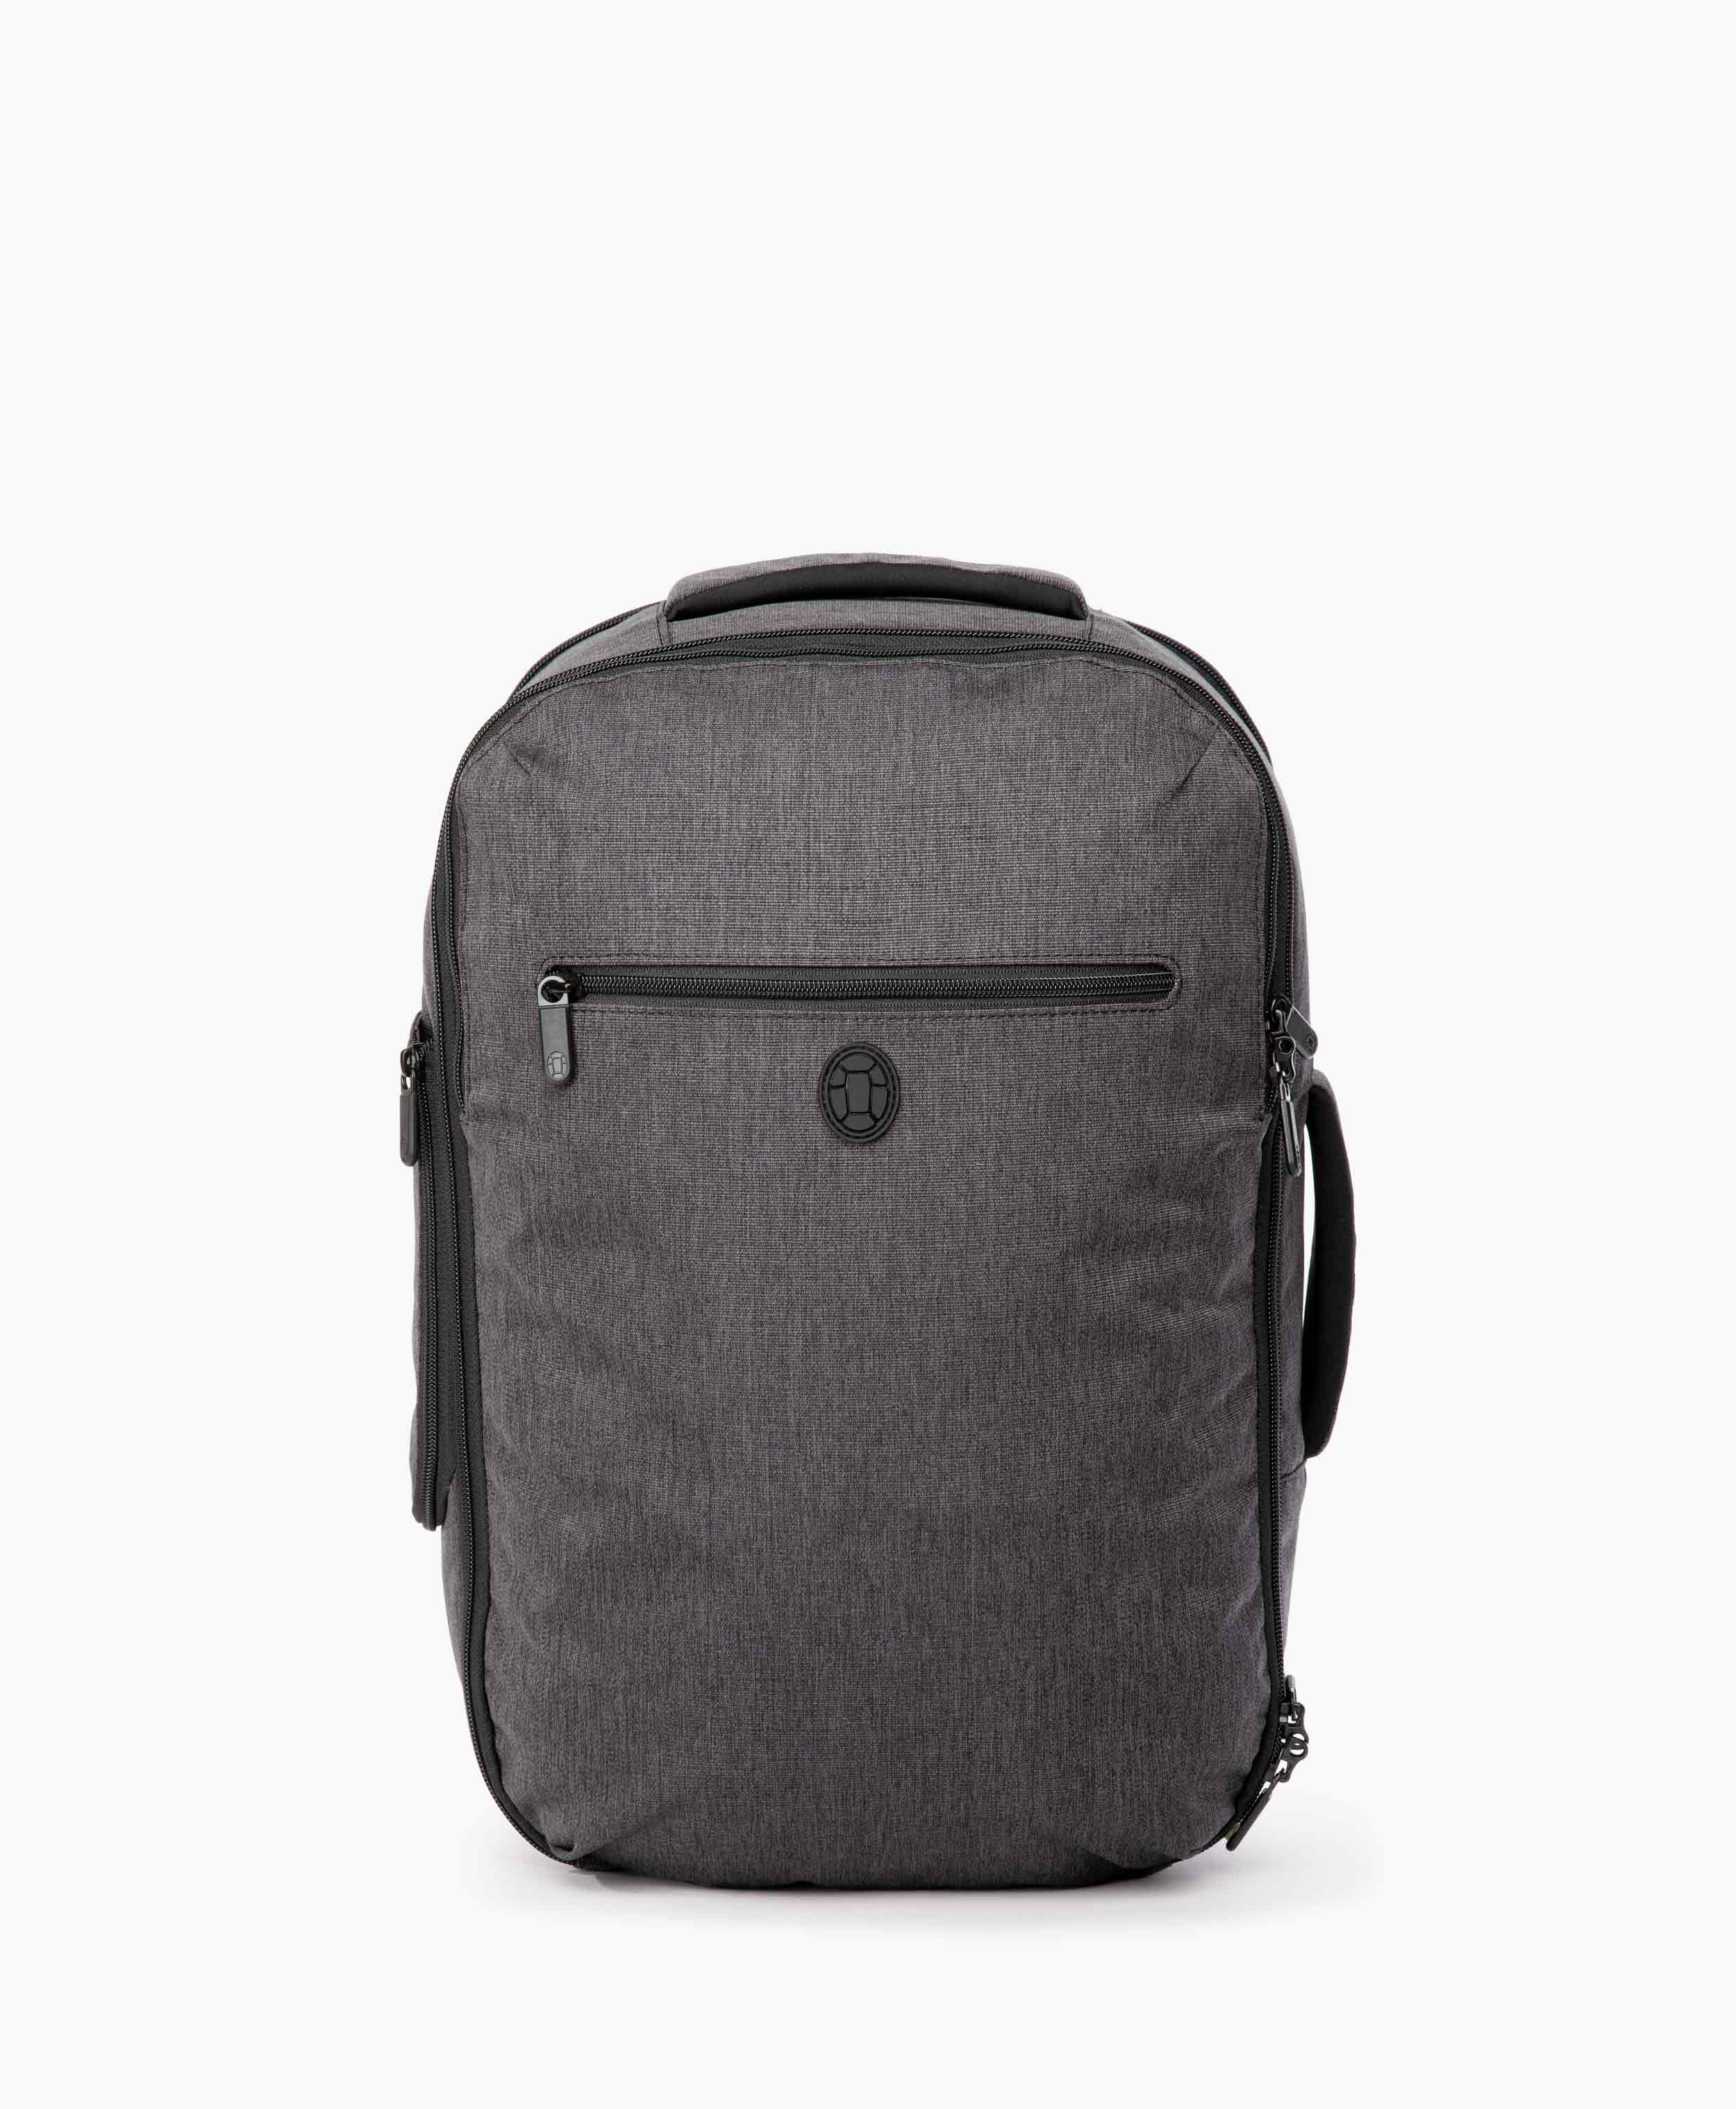 665917be57 Setout Laptop Backpack